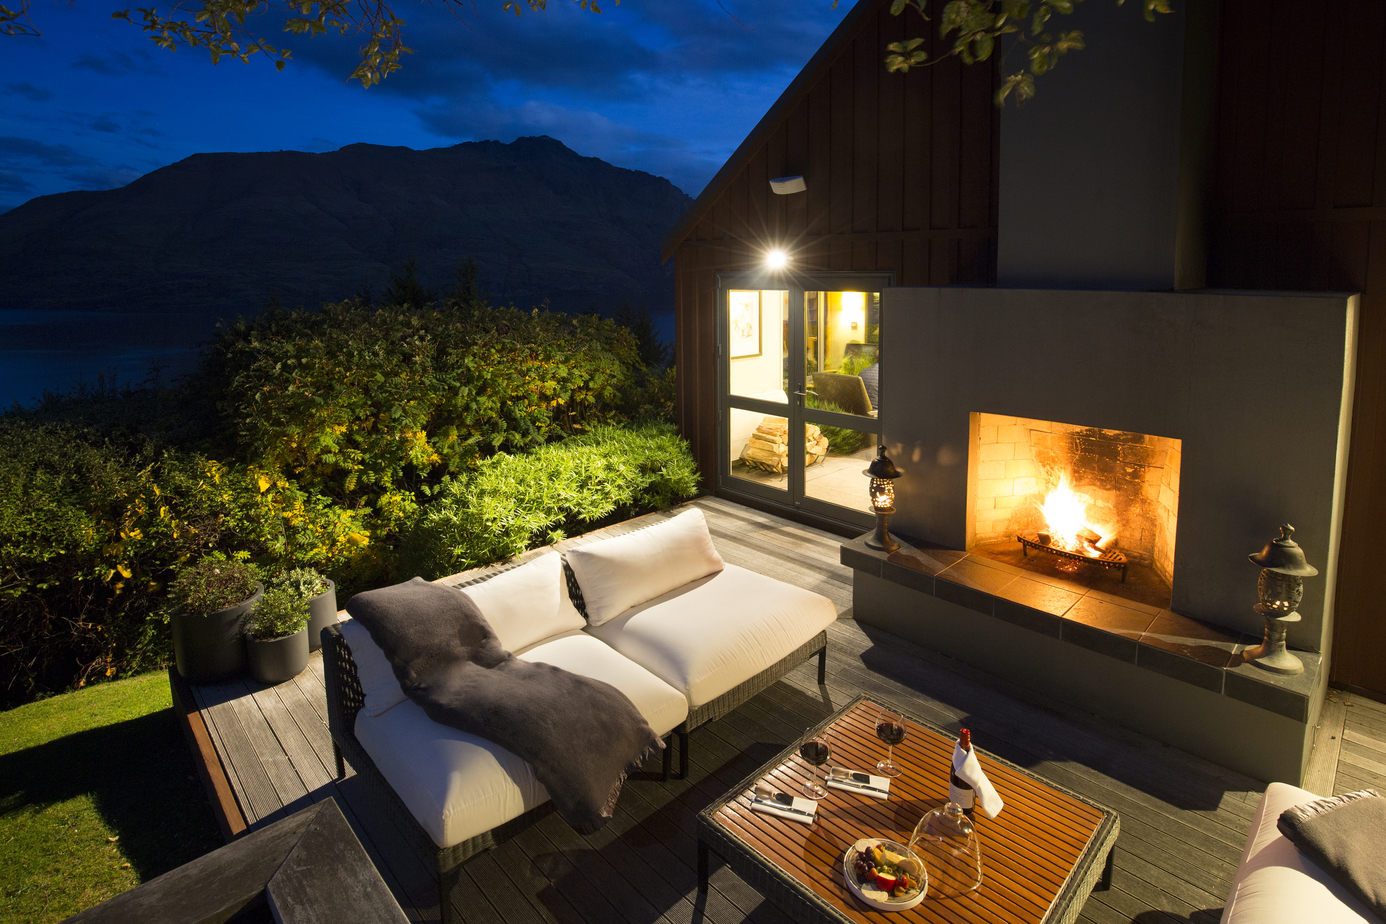 Mabey Ski_New Zealand_Queenstown_Azur Lodge 14.jpg